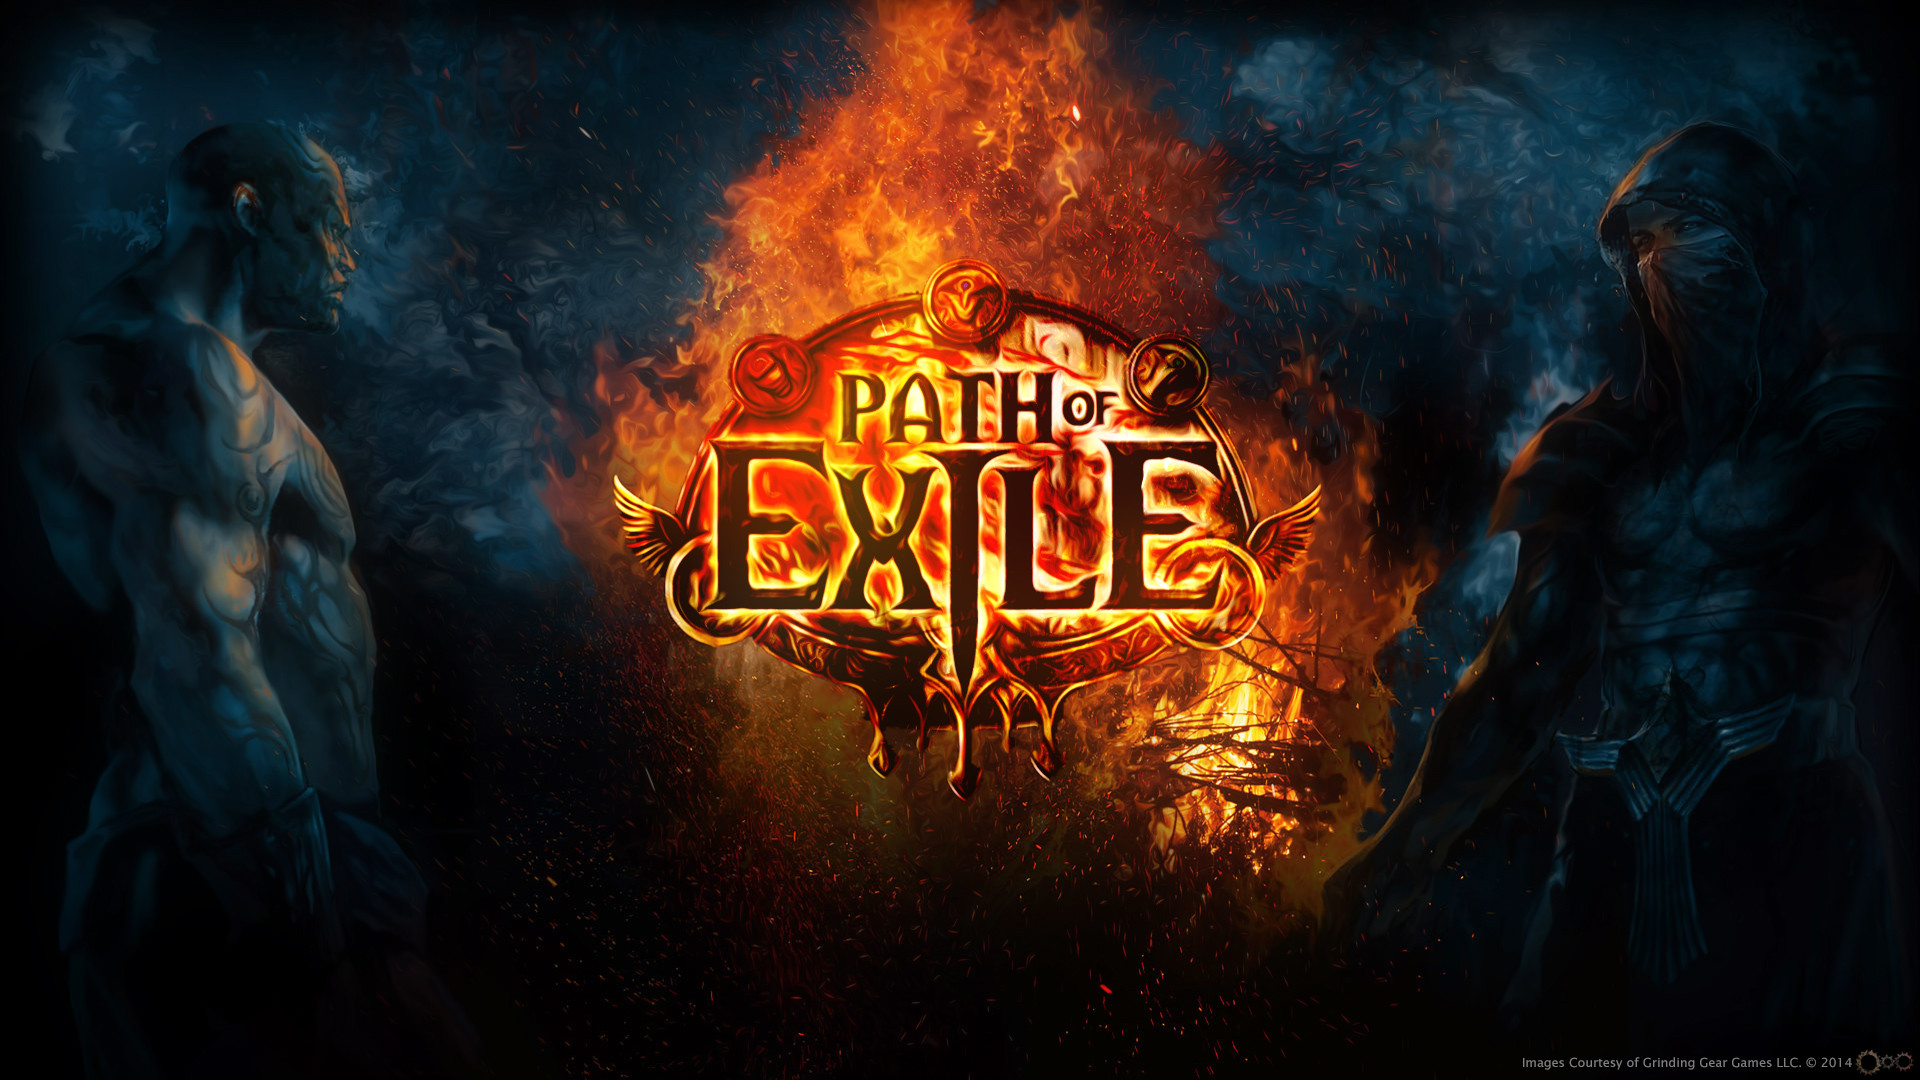 Buy spheres of exaltation in the Path of Exile